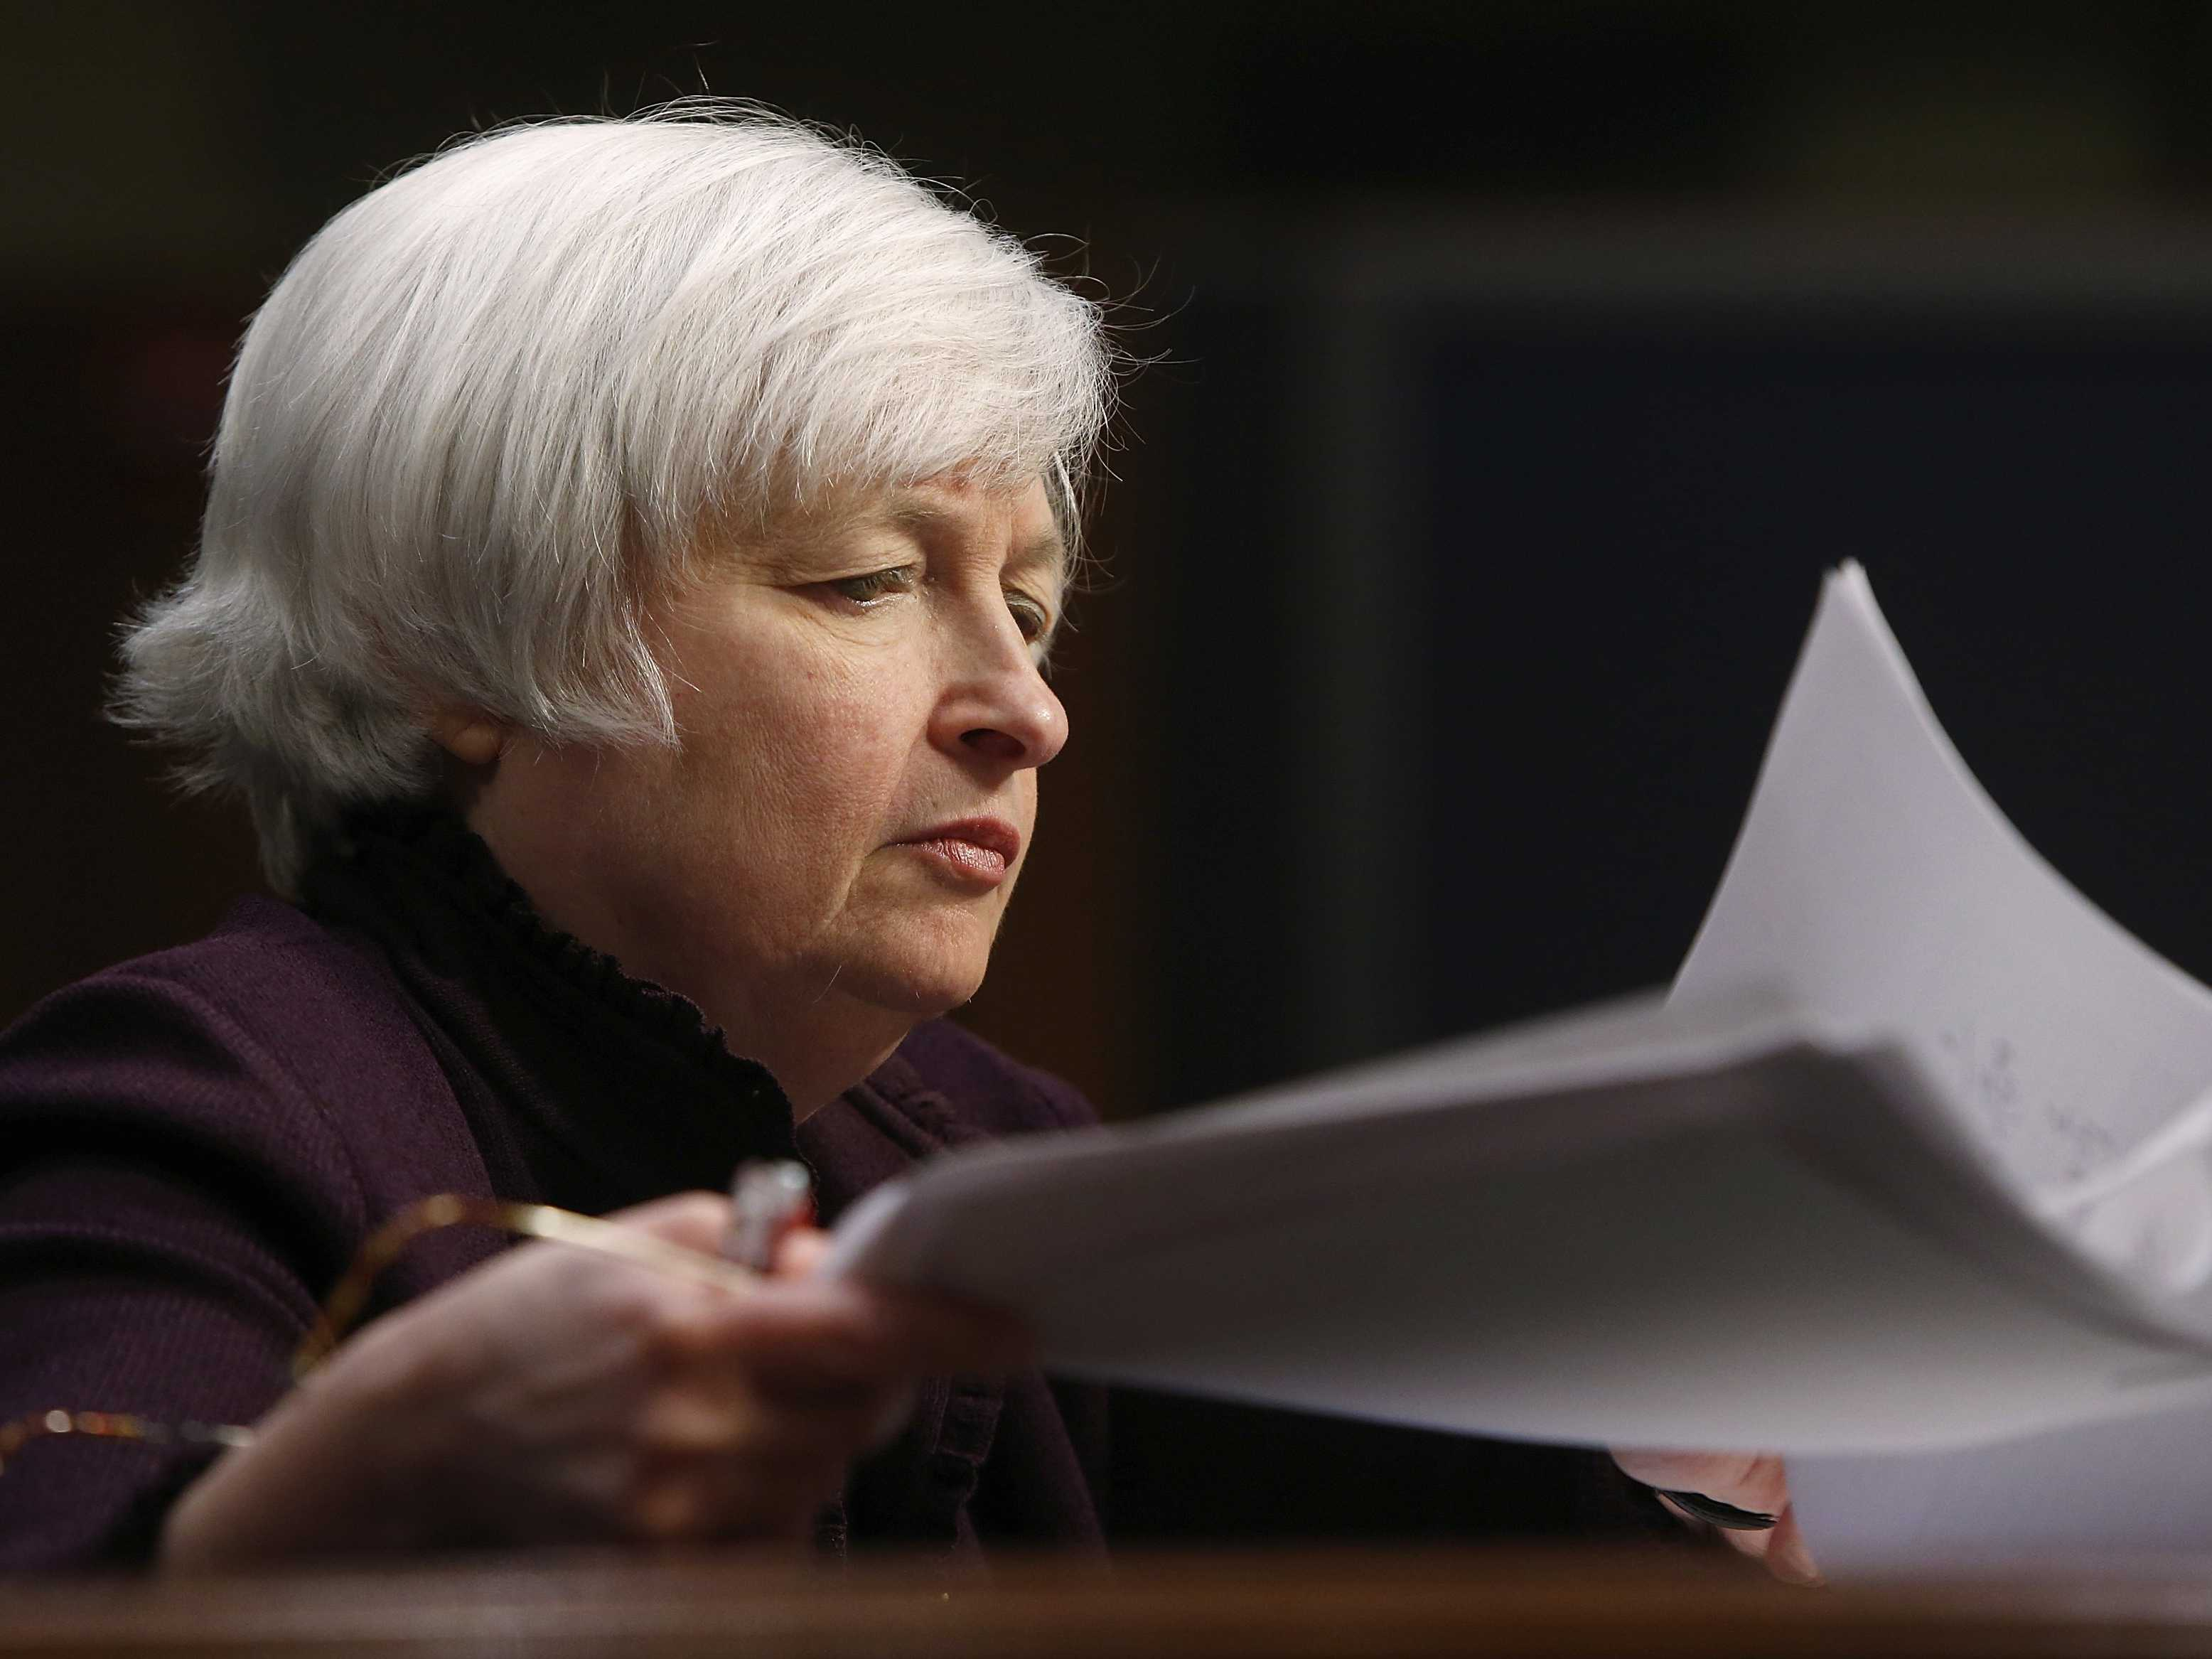 janet-yellen-is-looking-at-charts-that-should-make-all-the-bulls-nervous